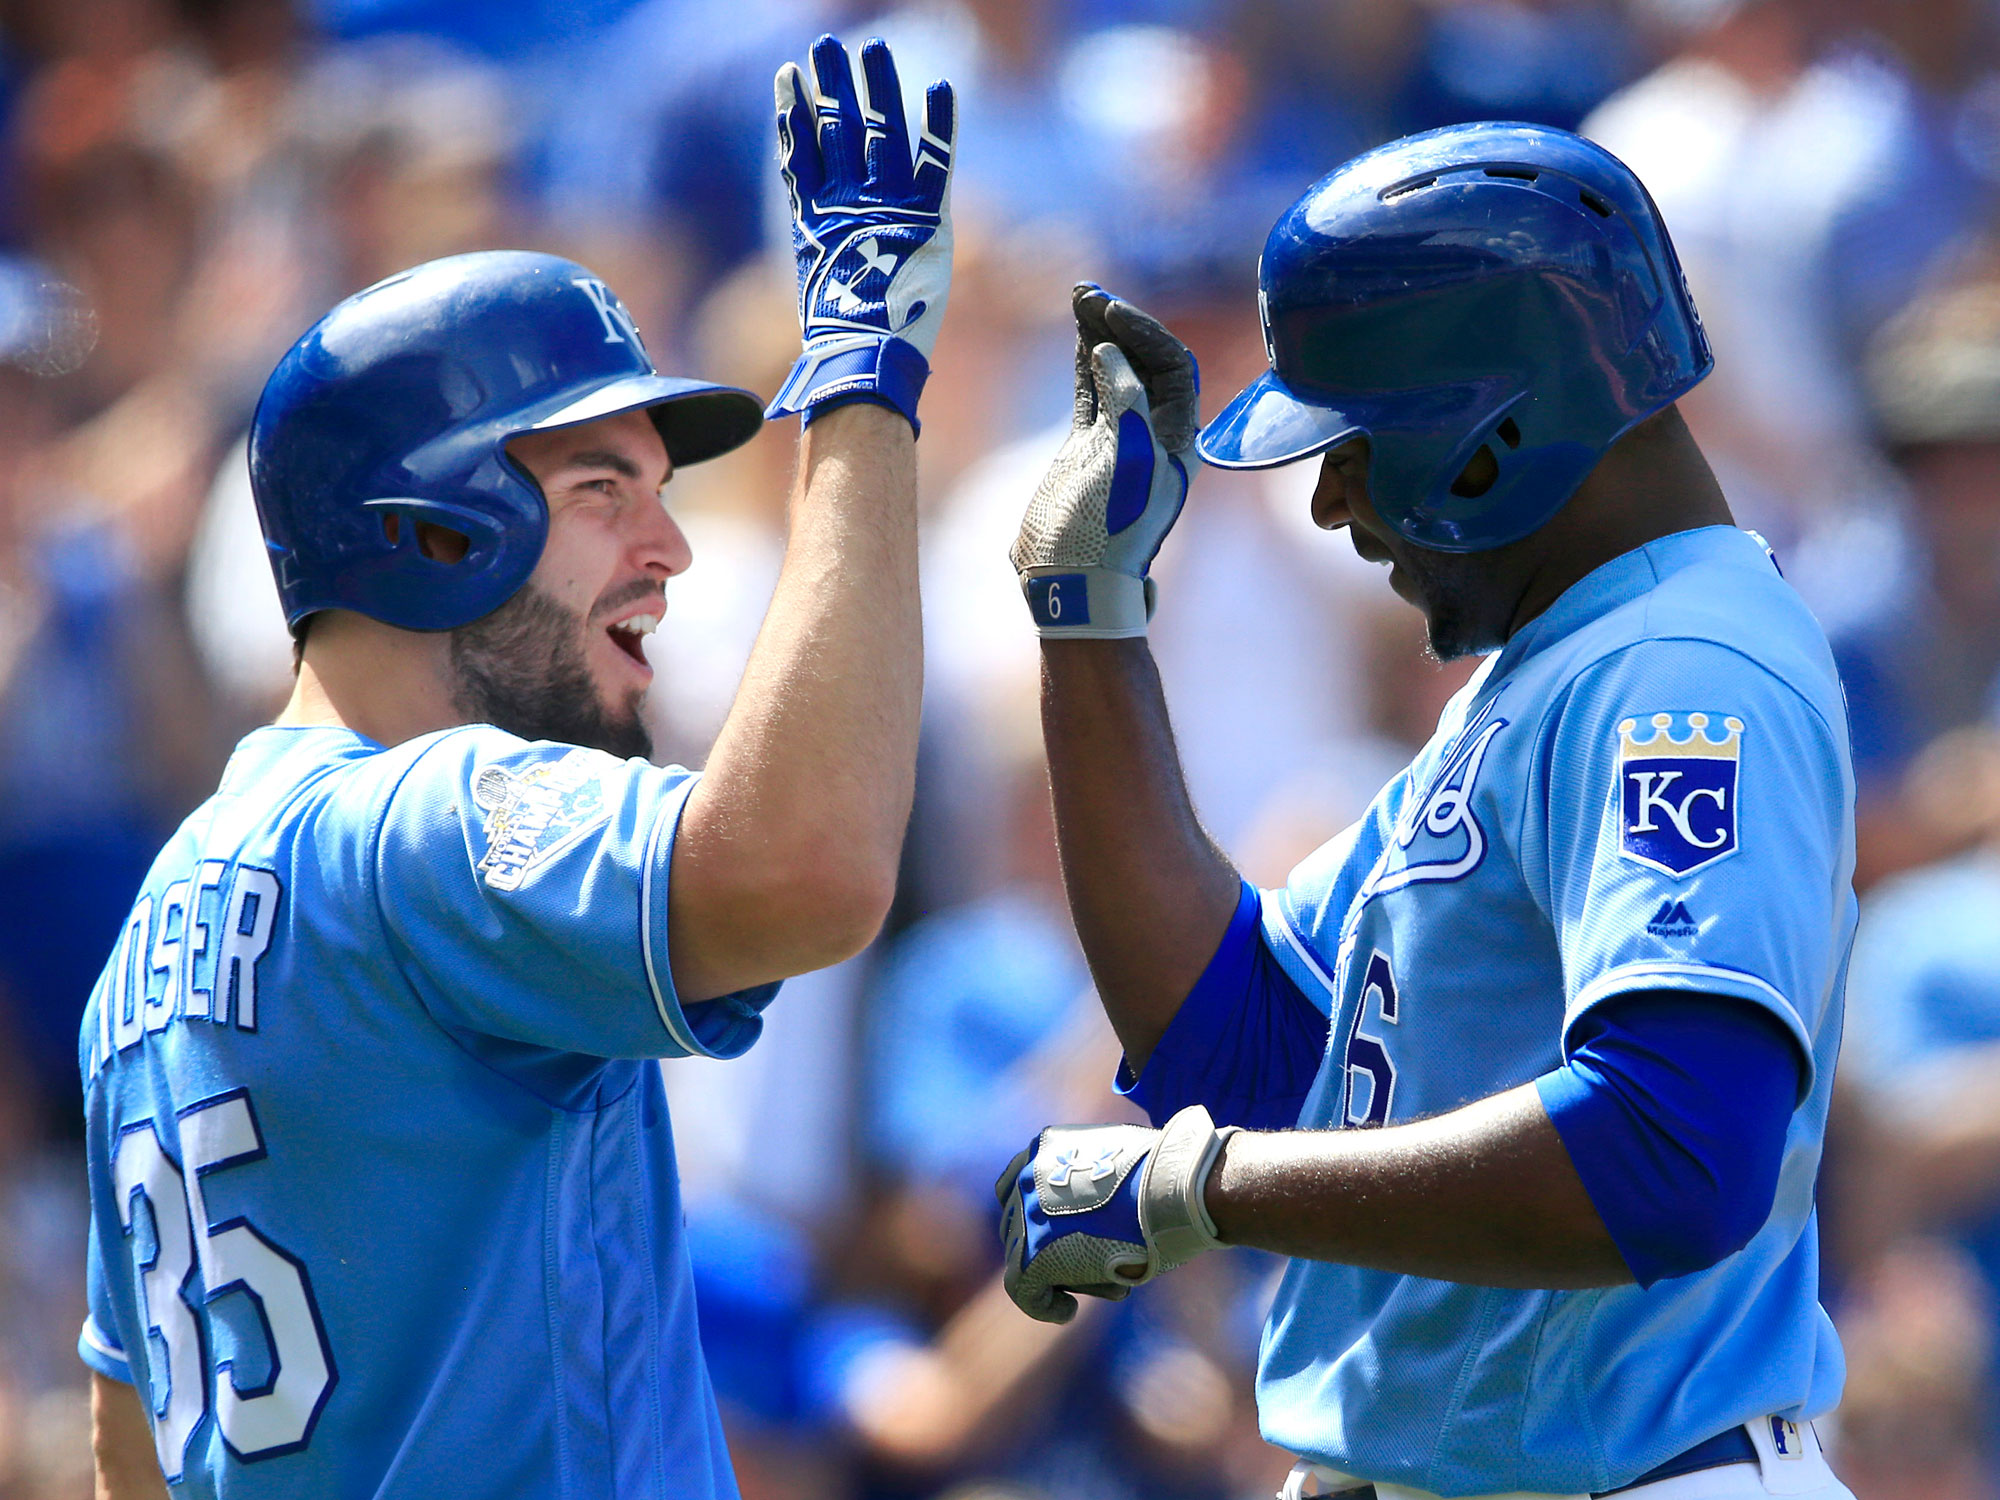 Eric Hosmer and Lorenzo Cain, Kansas City Royals